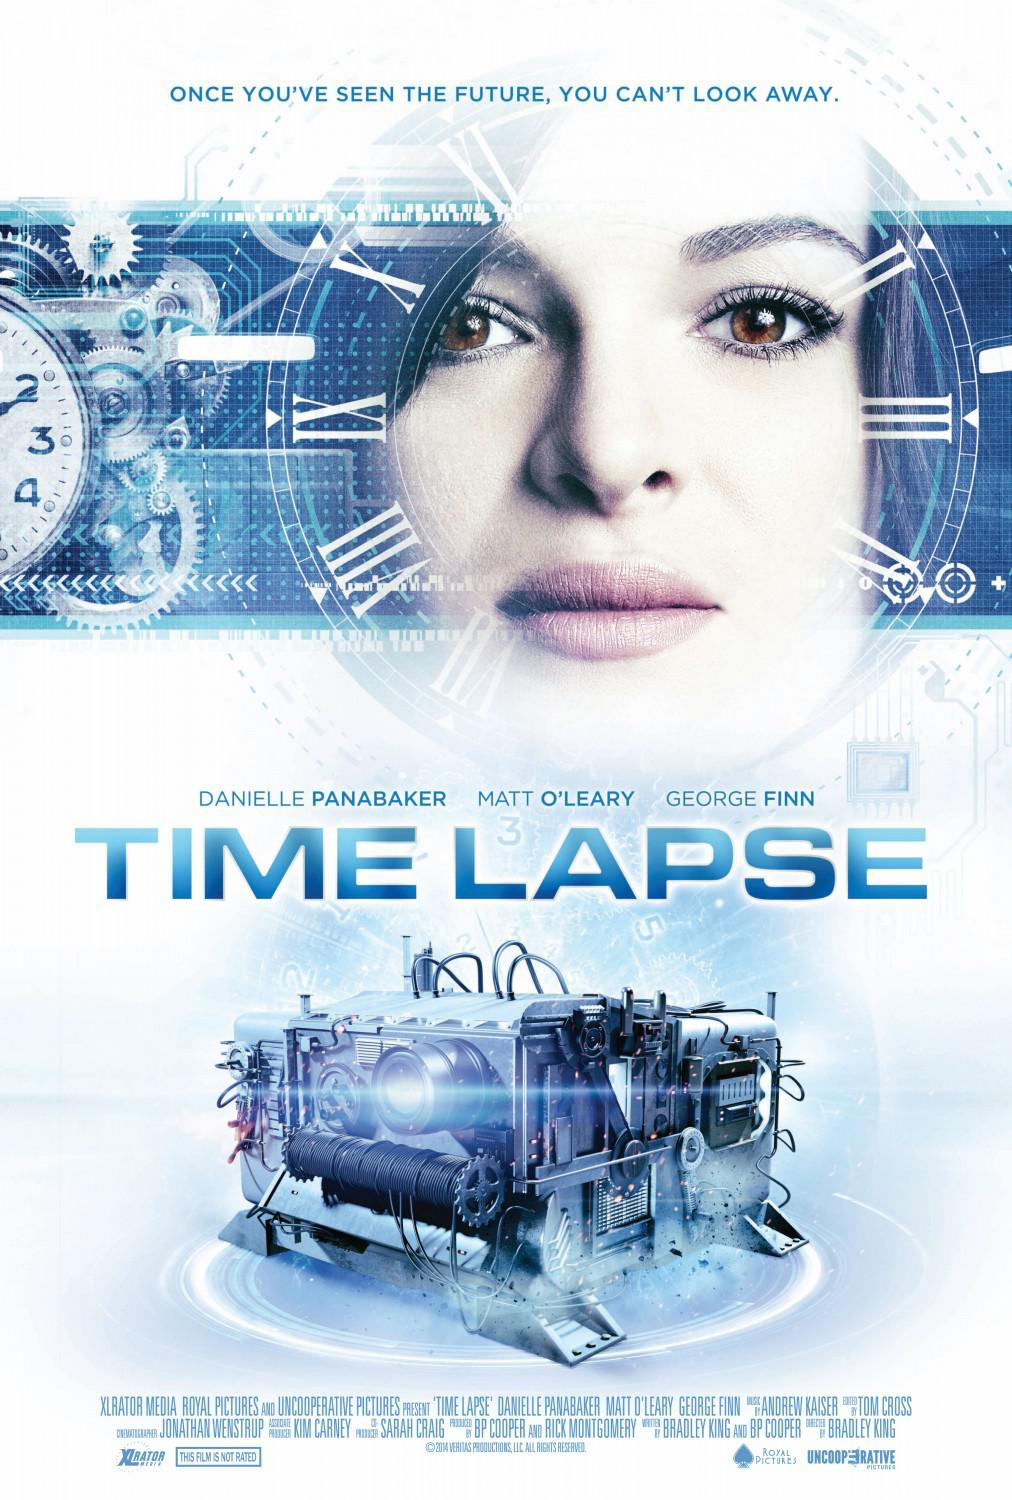 Time Lapse - scifi film poster - Once you've seen the Future, you can't look away - Danielle Panabaker - Matt O'Leary - George Finn